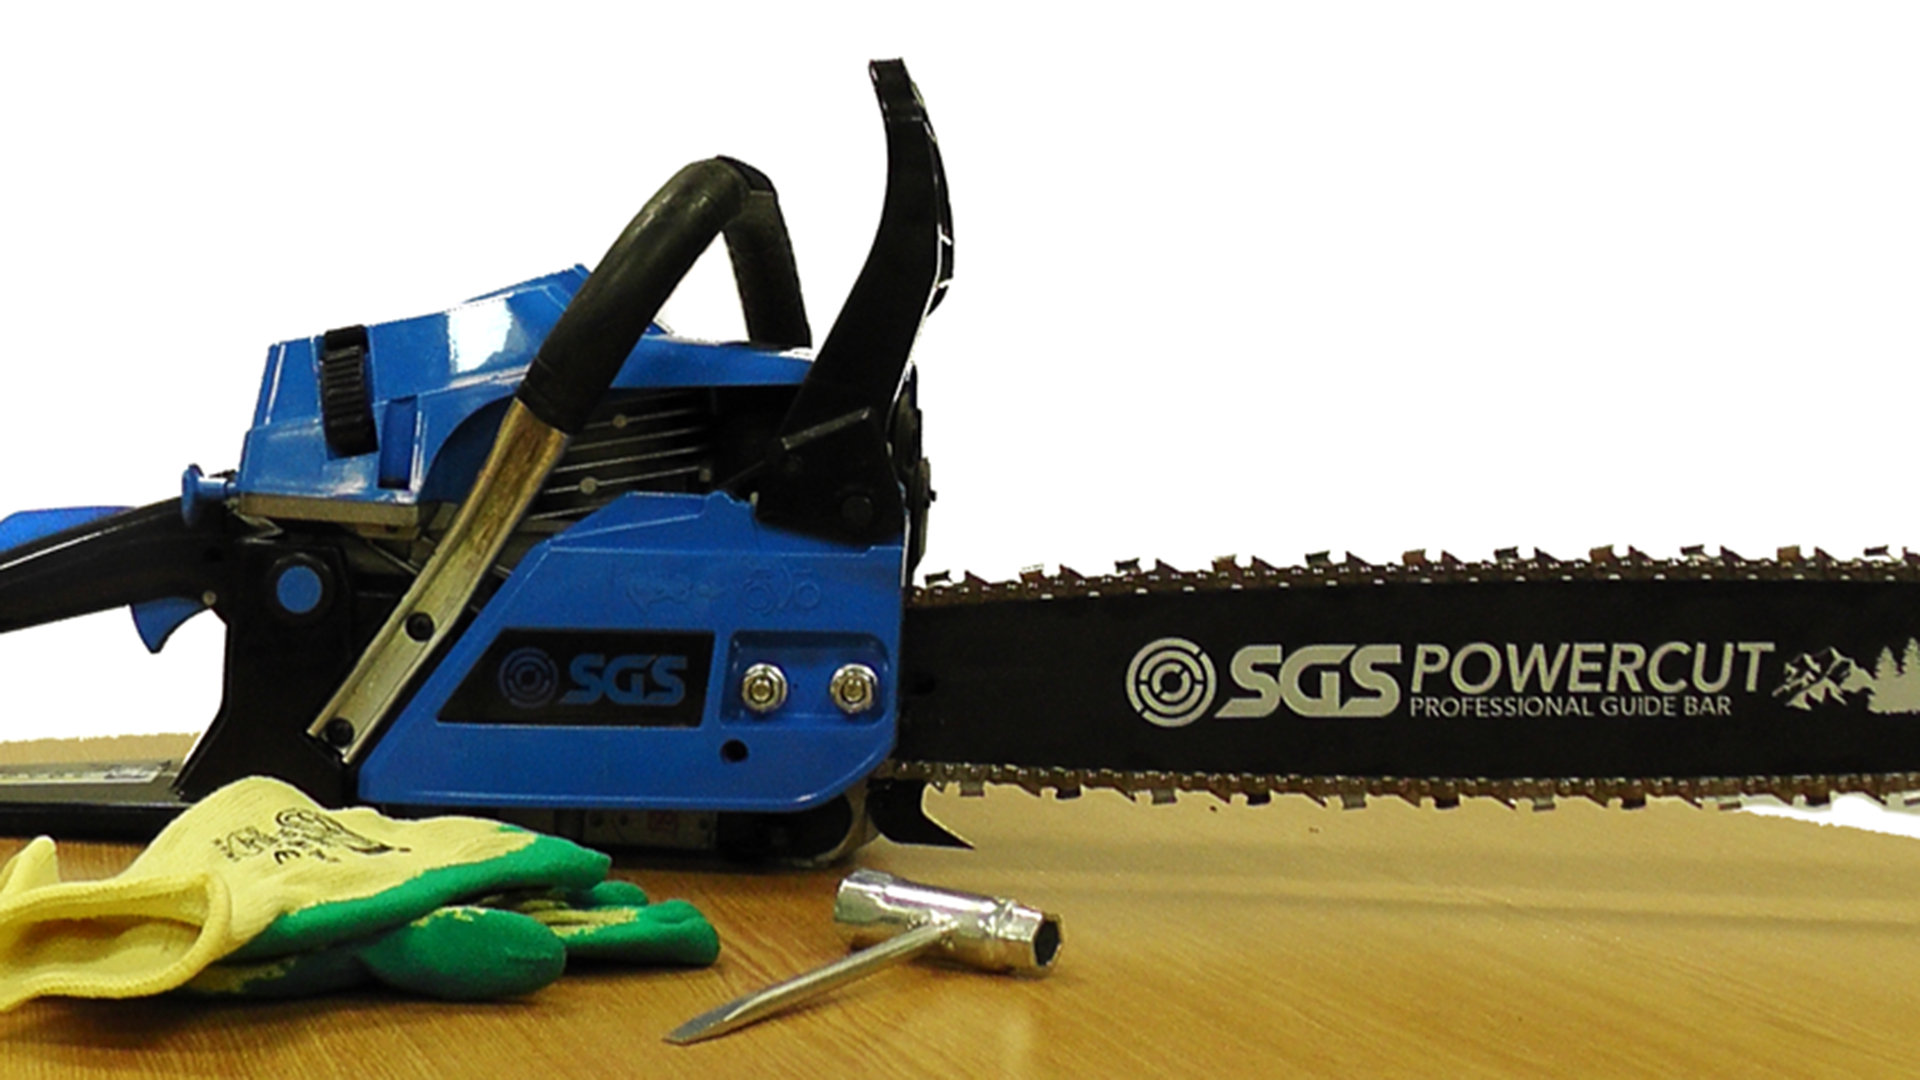 Now, you can fully tighten the nuts on the chainsaw's side plate and there you have it - your chain is now replaced.